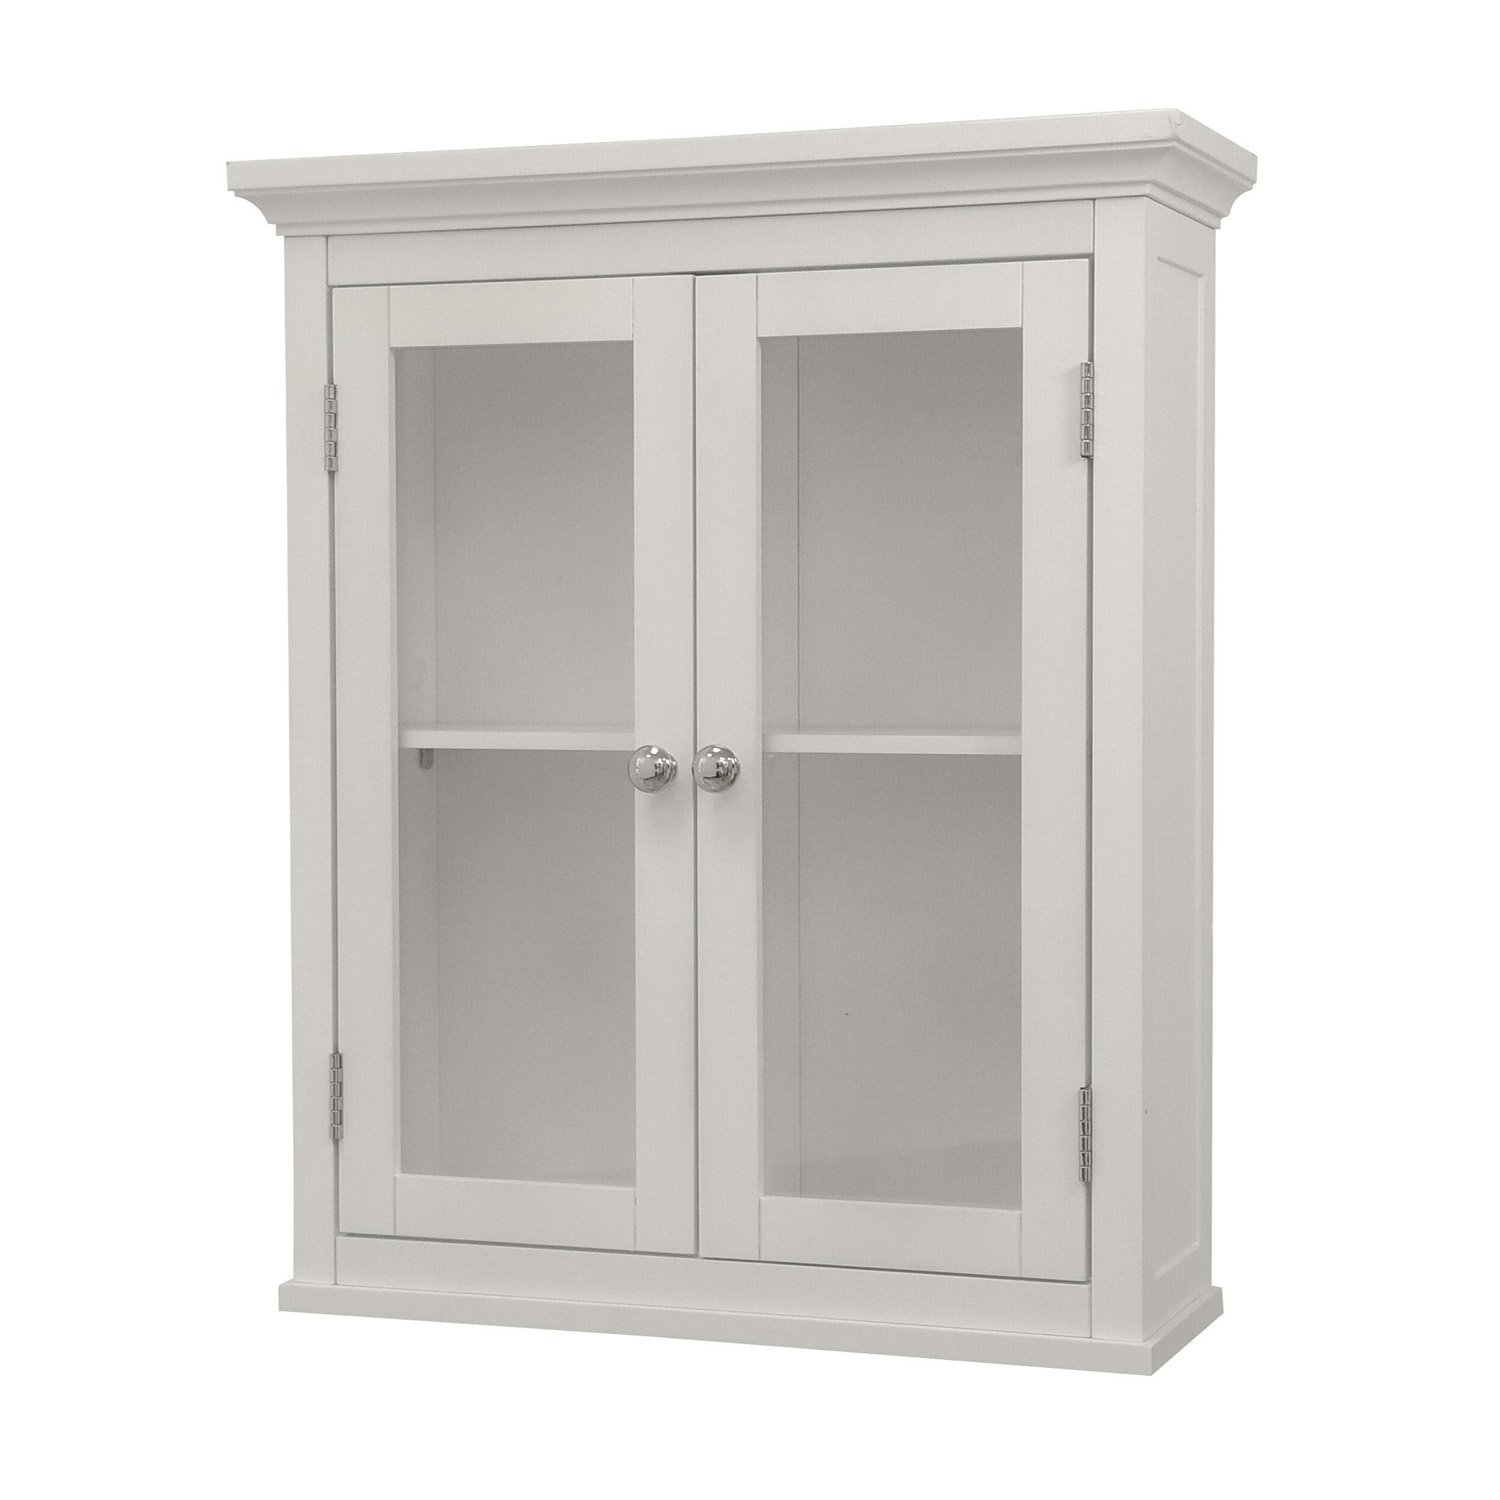 Amazon.com: Elegant Home Fashions Madison Collection Shelved Wall Cabinet  With Glass Paneled Doors, White: Kitchen U0026 Dining Part 43